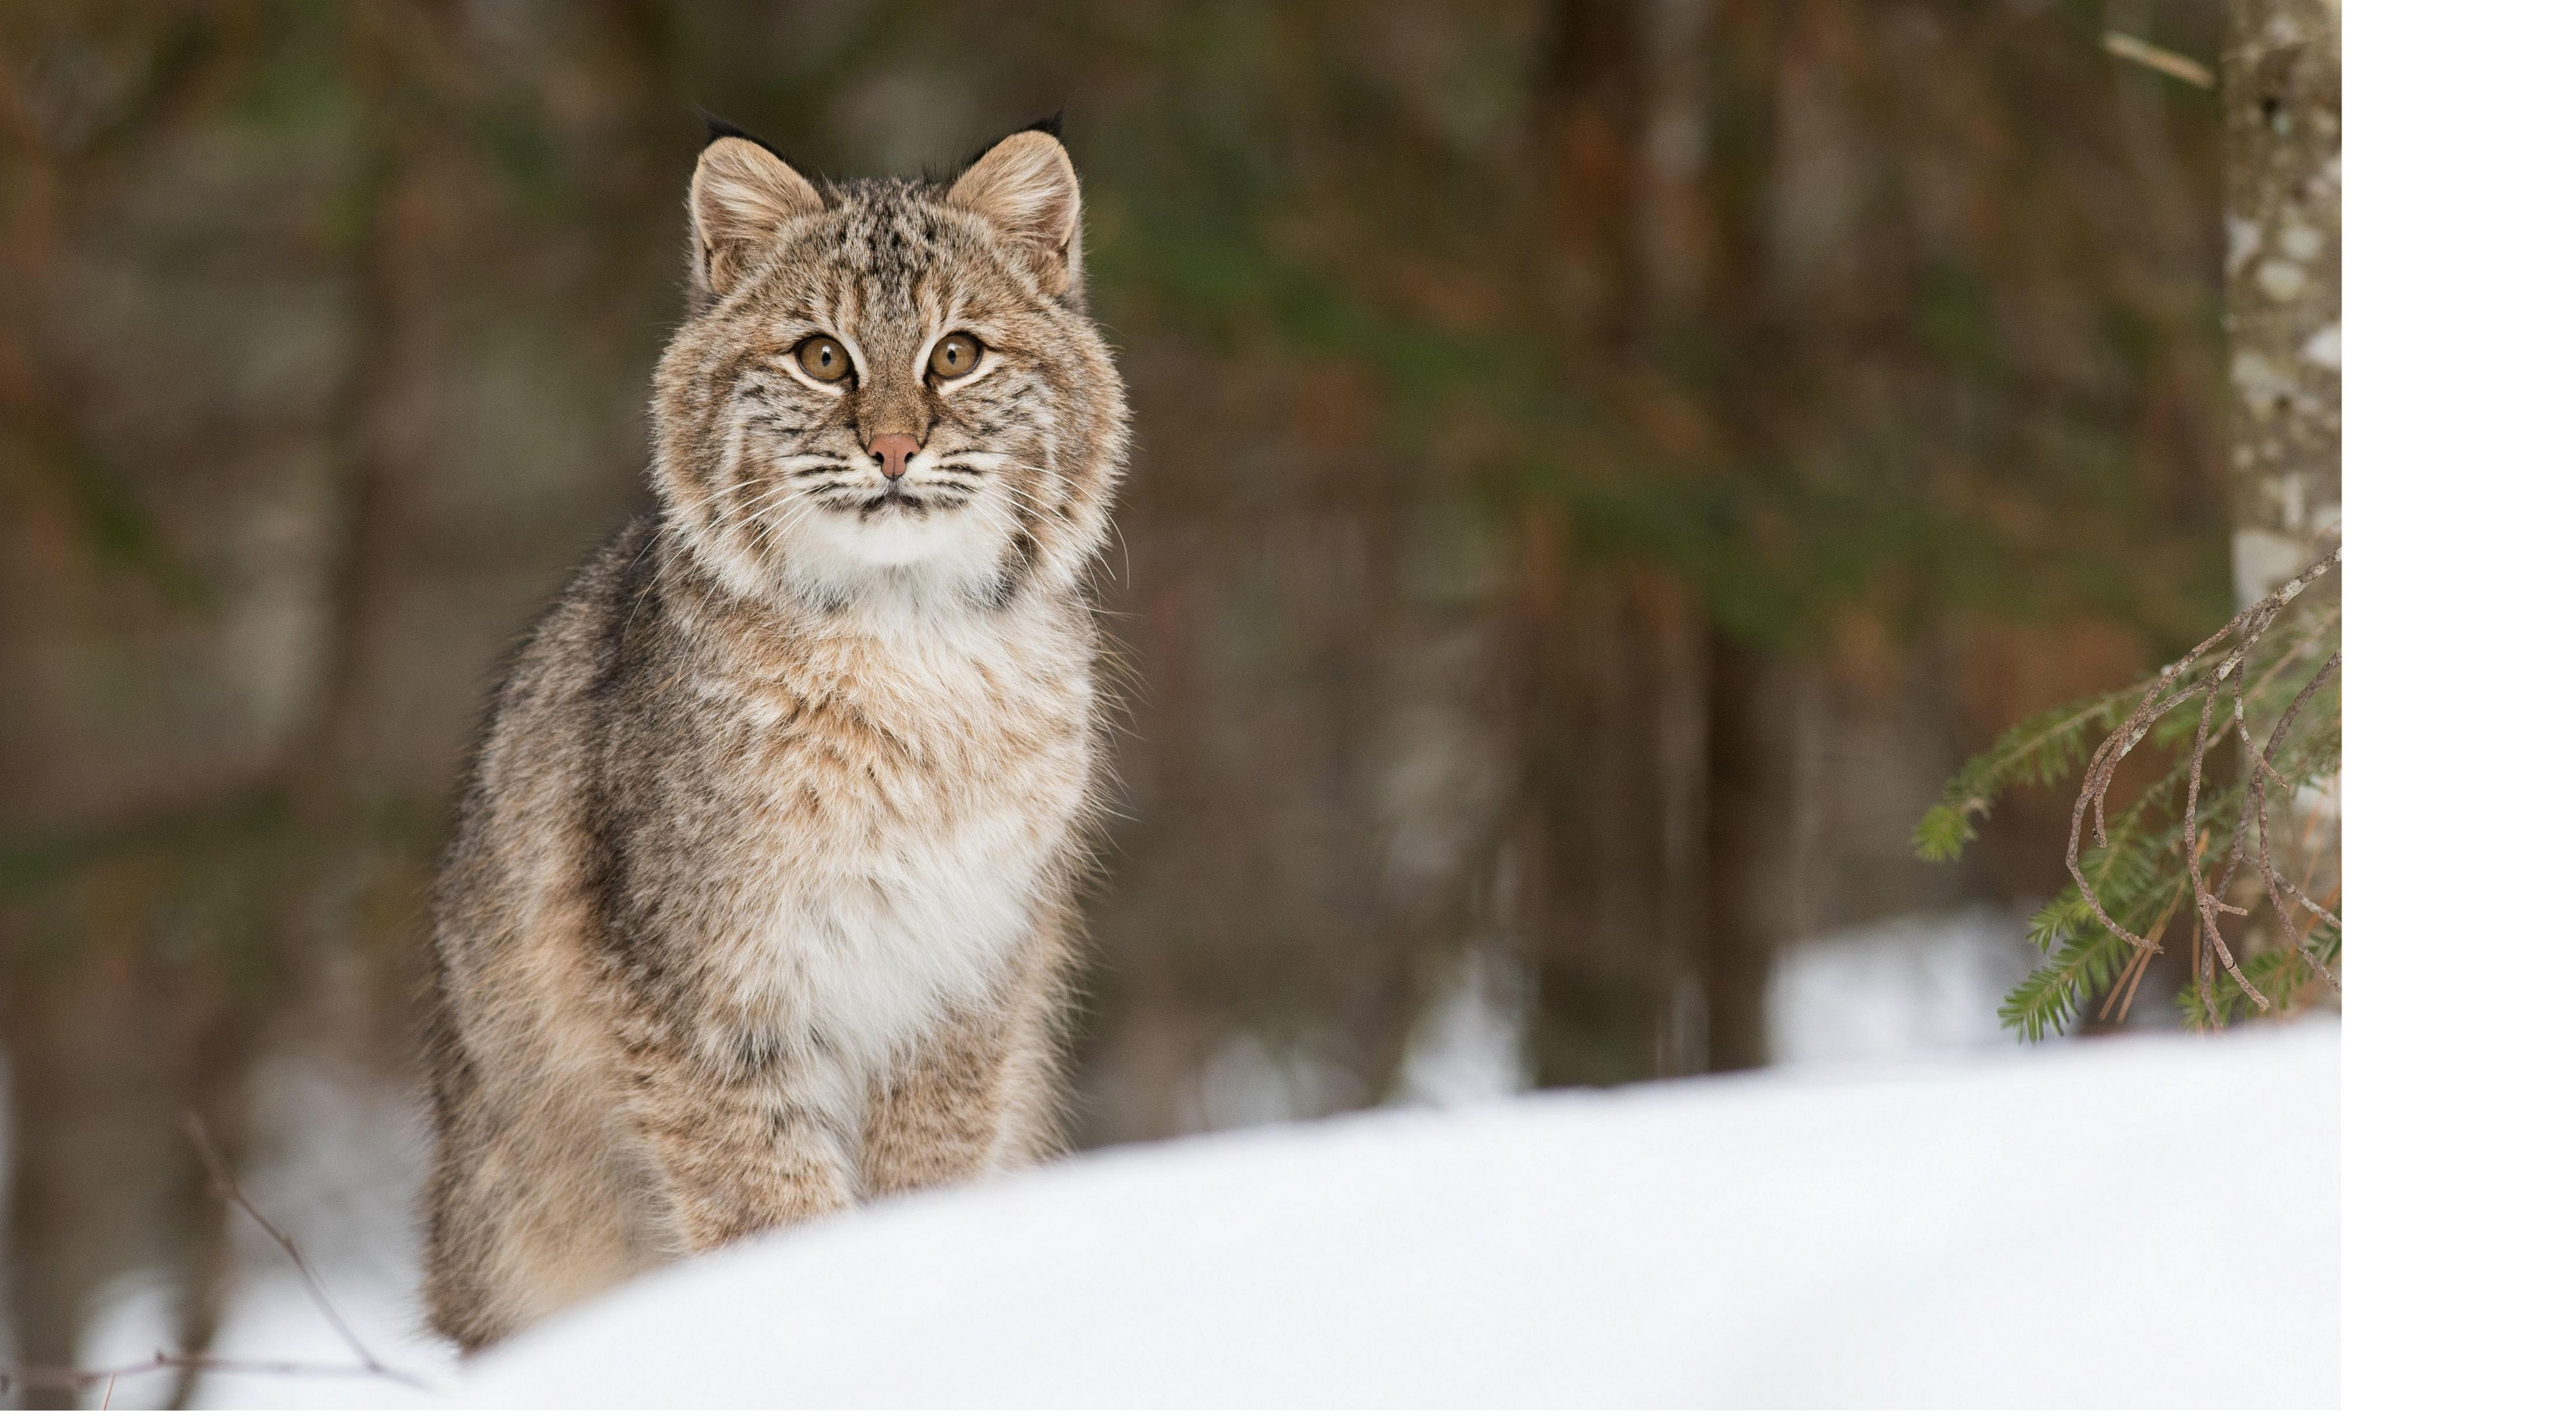 Bobcat in a snowy forest